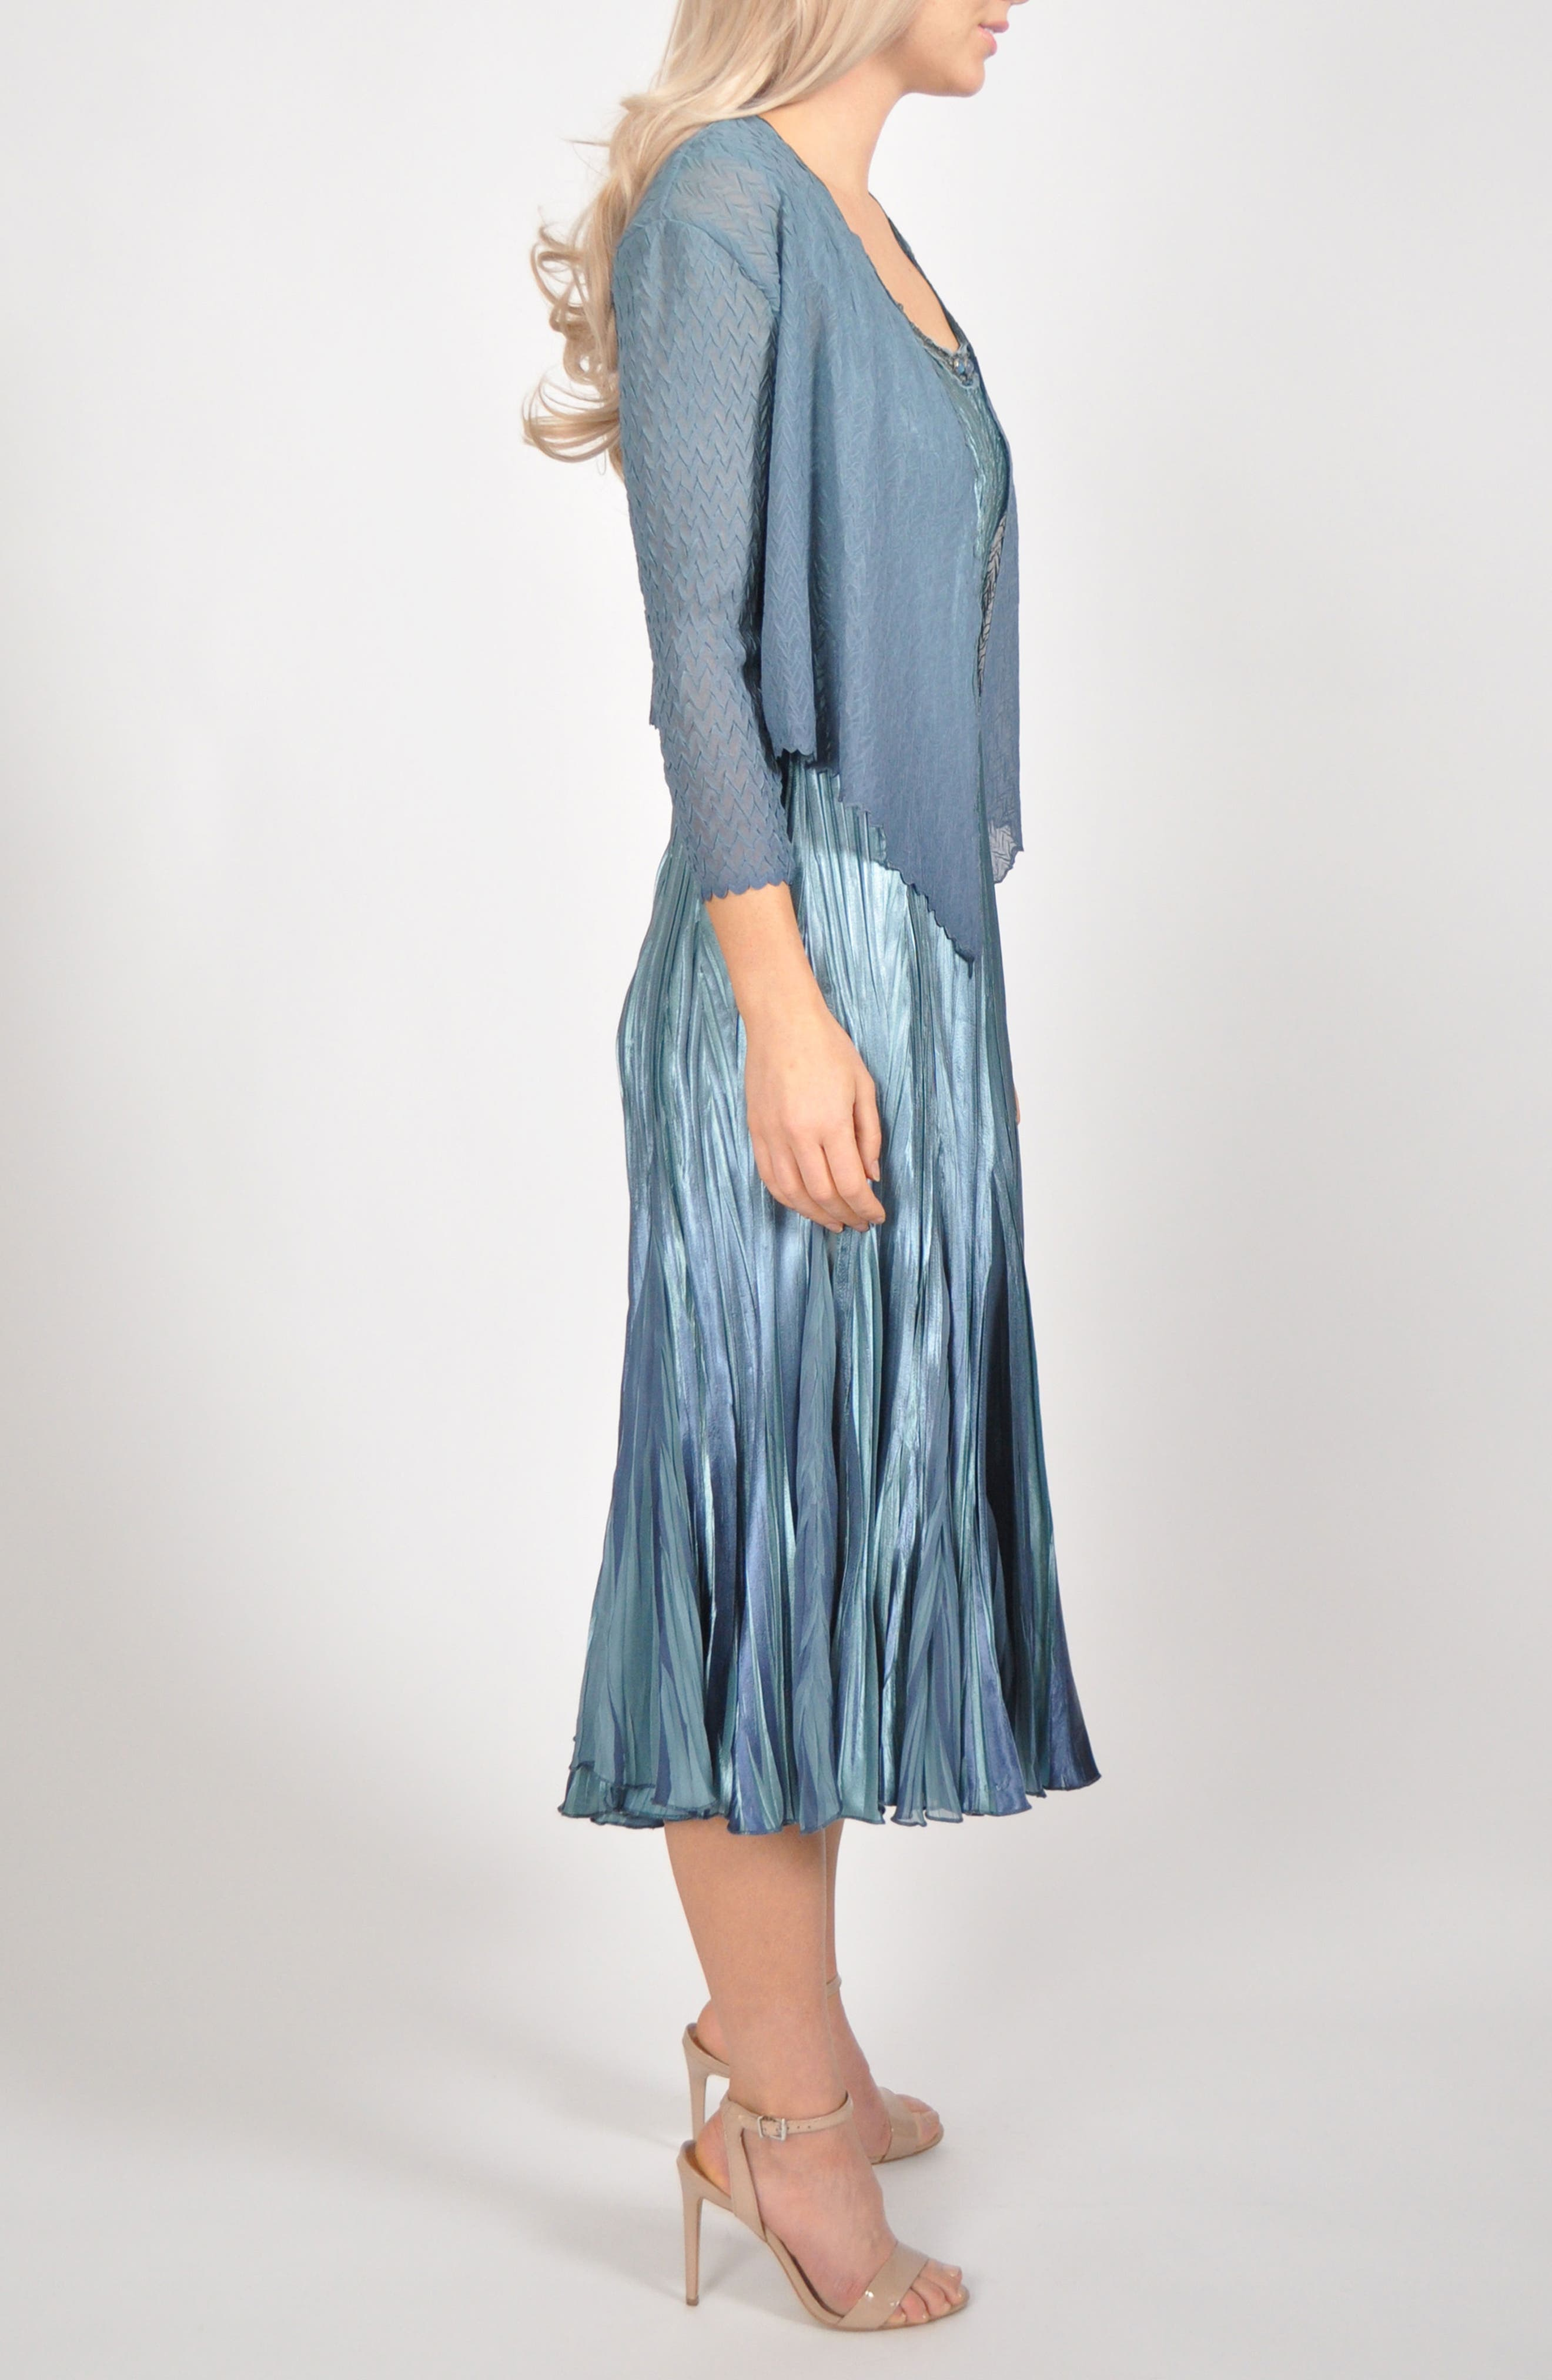 Embellished Pleat Mixed Media Dress with Jacket,                             Alternate thumbnail 6, color,                             SILVER BLUE OMBRE